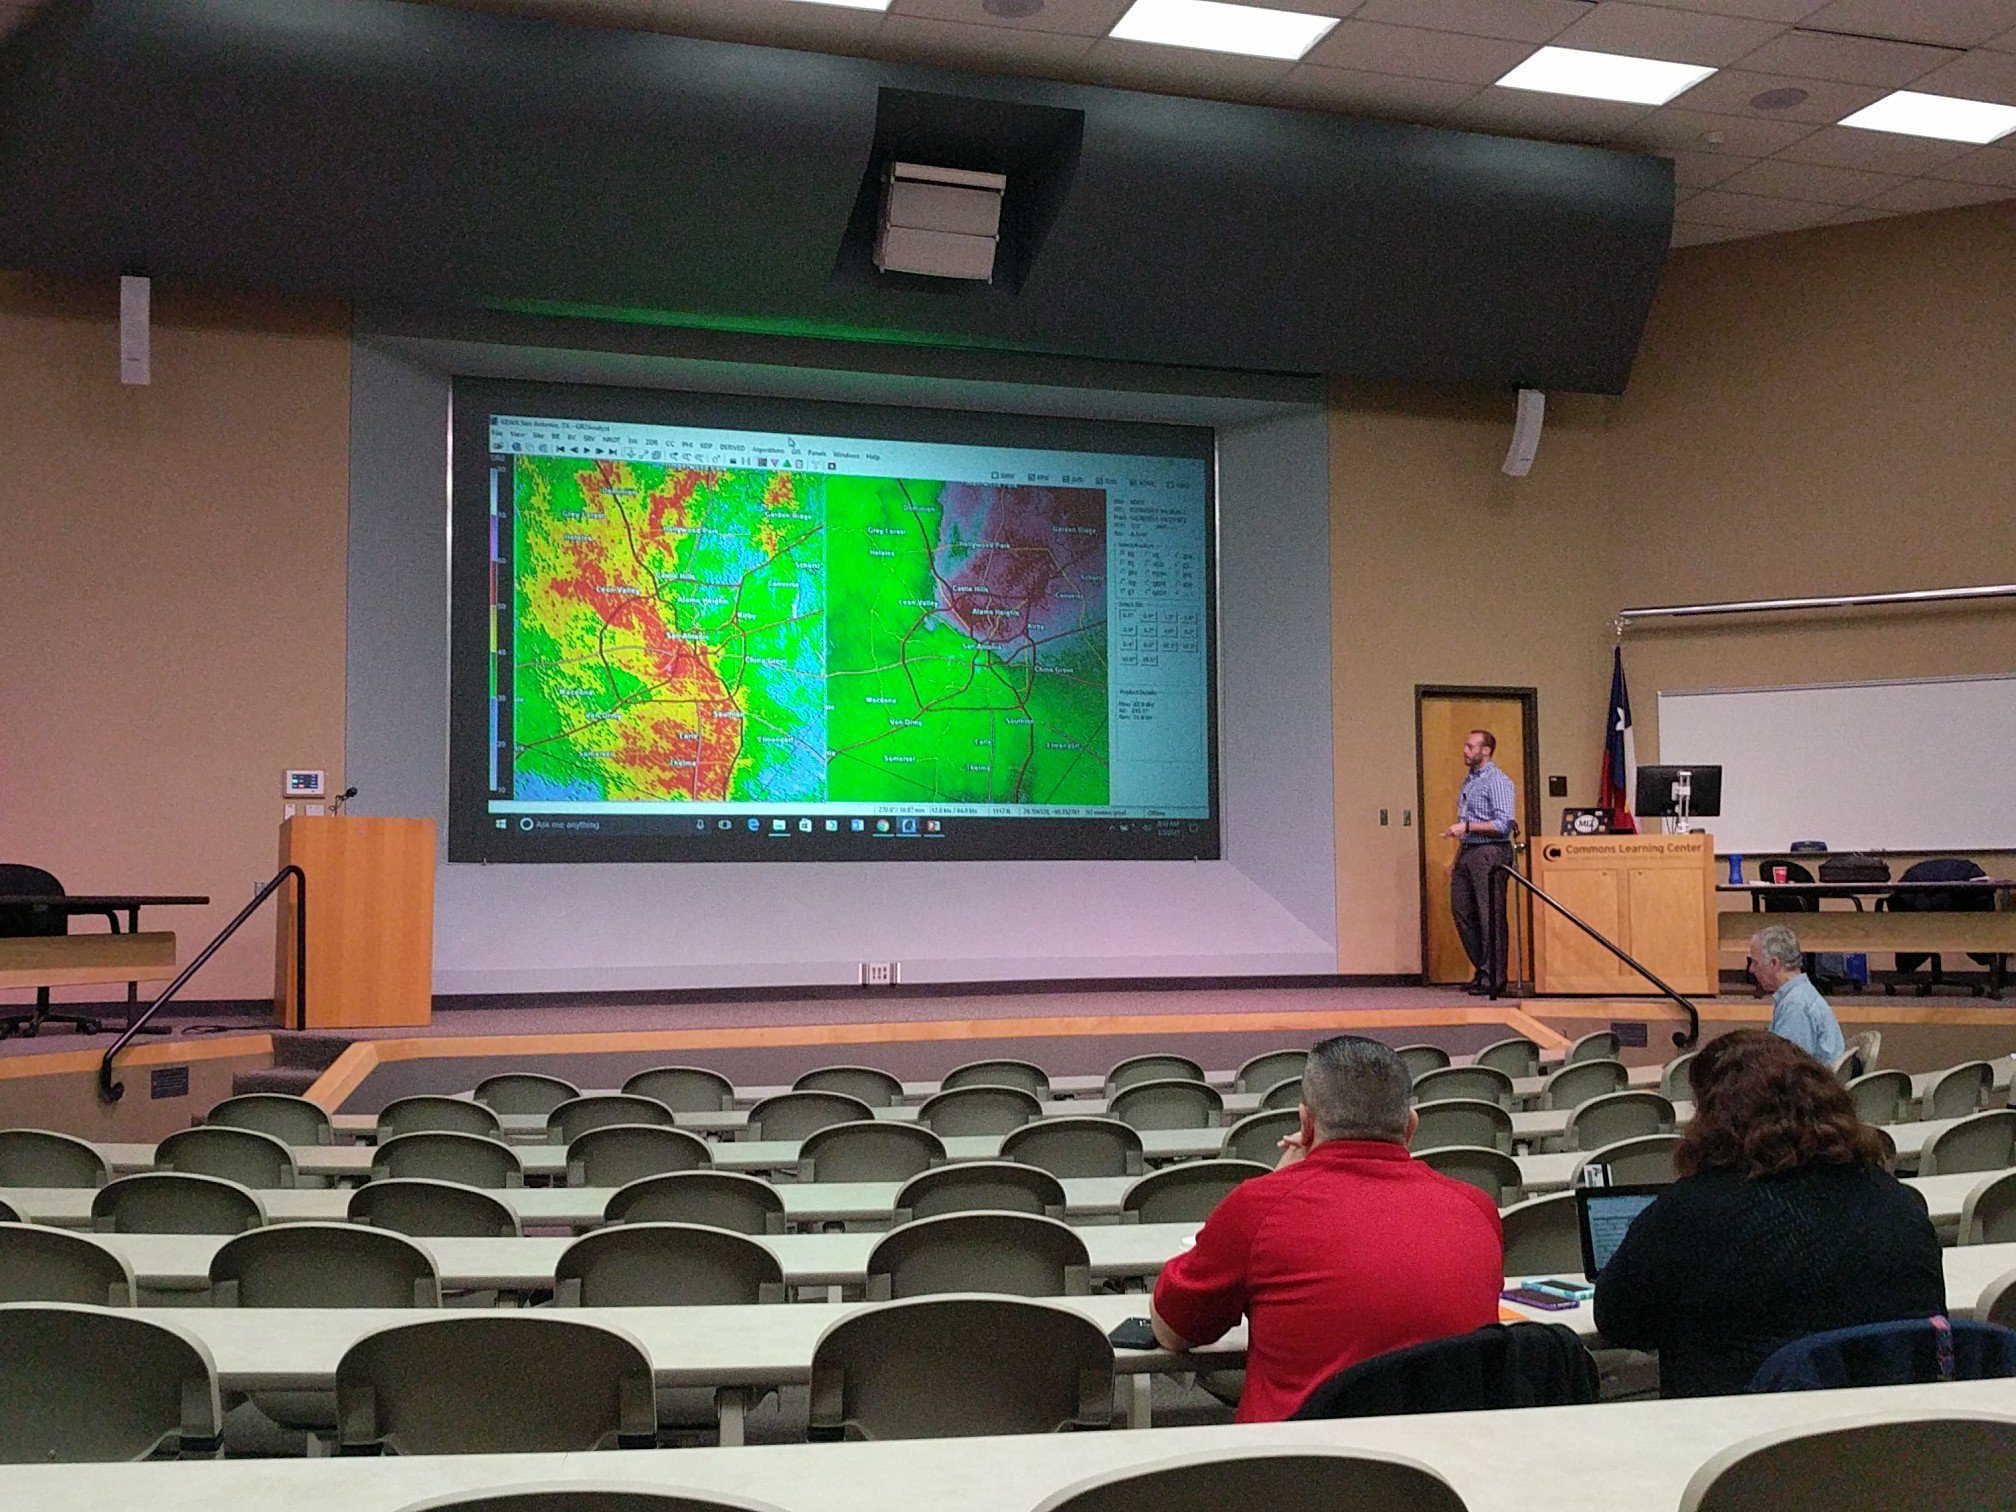 .@bmw_9109 teaching the GR2Analyst short course with the recent San Antonio tornadoes featured from Feb 19! #txwx2017 https://t.co/ZmuNt19NAW